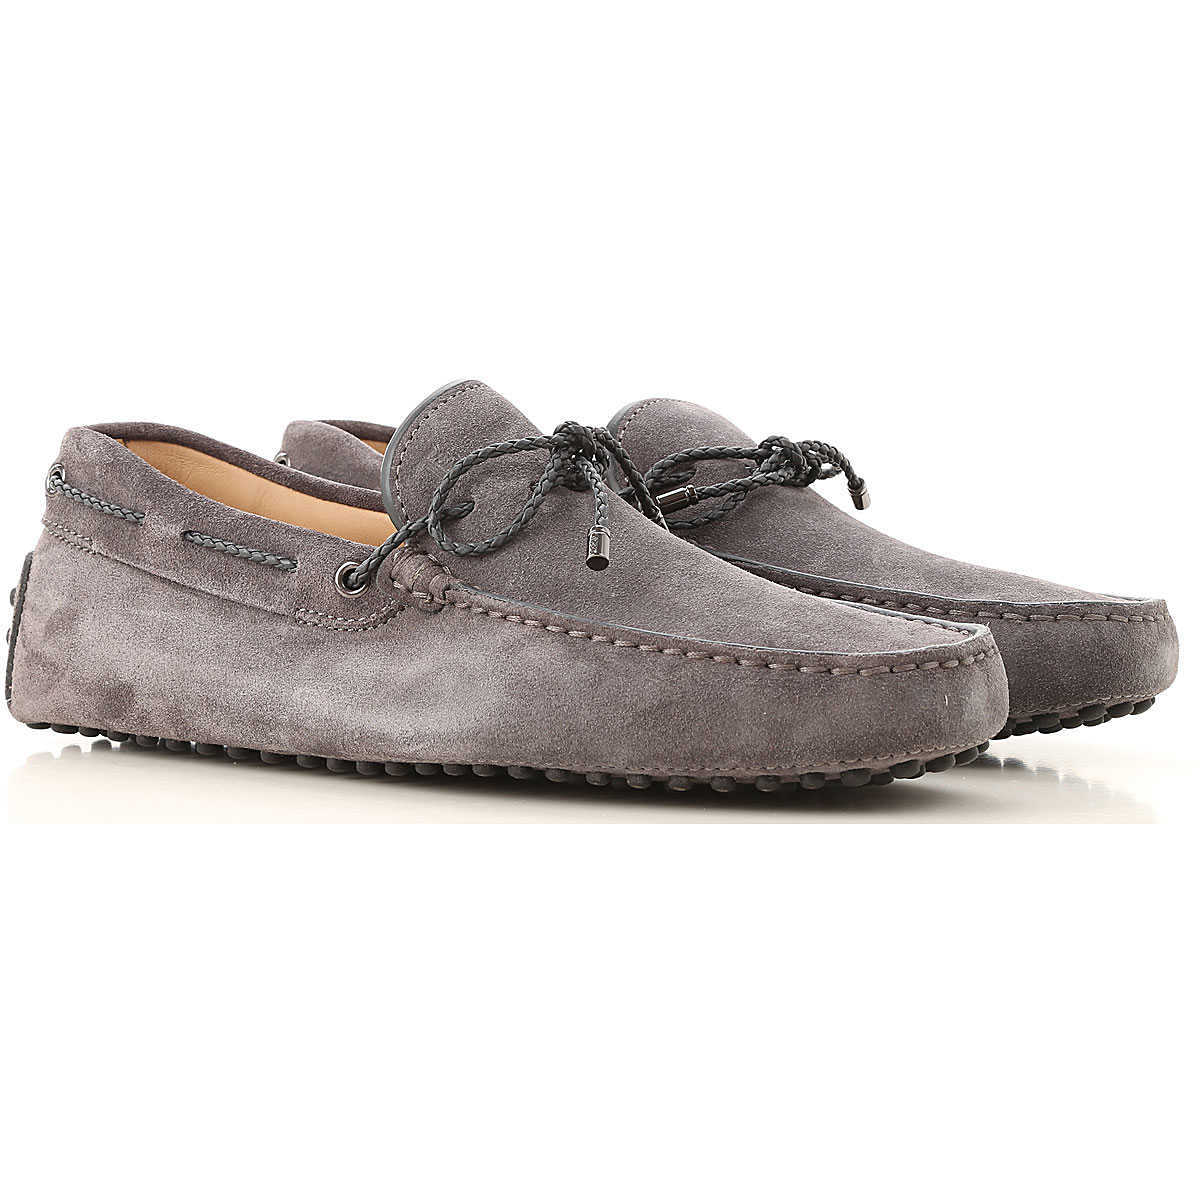 Tods Loafers for Men On Sale Grey DK - GOOFASH - Mens LOAFERS